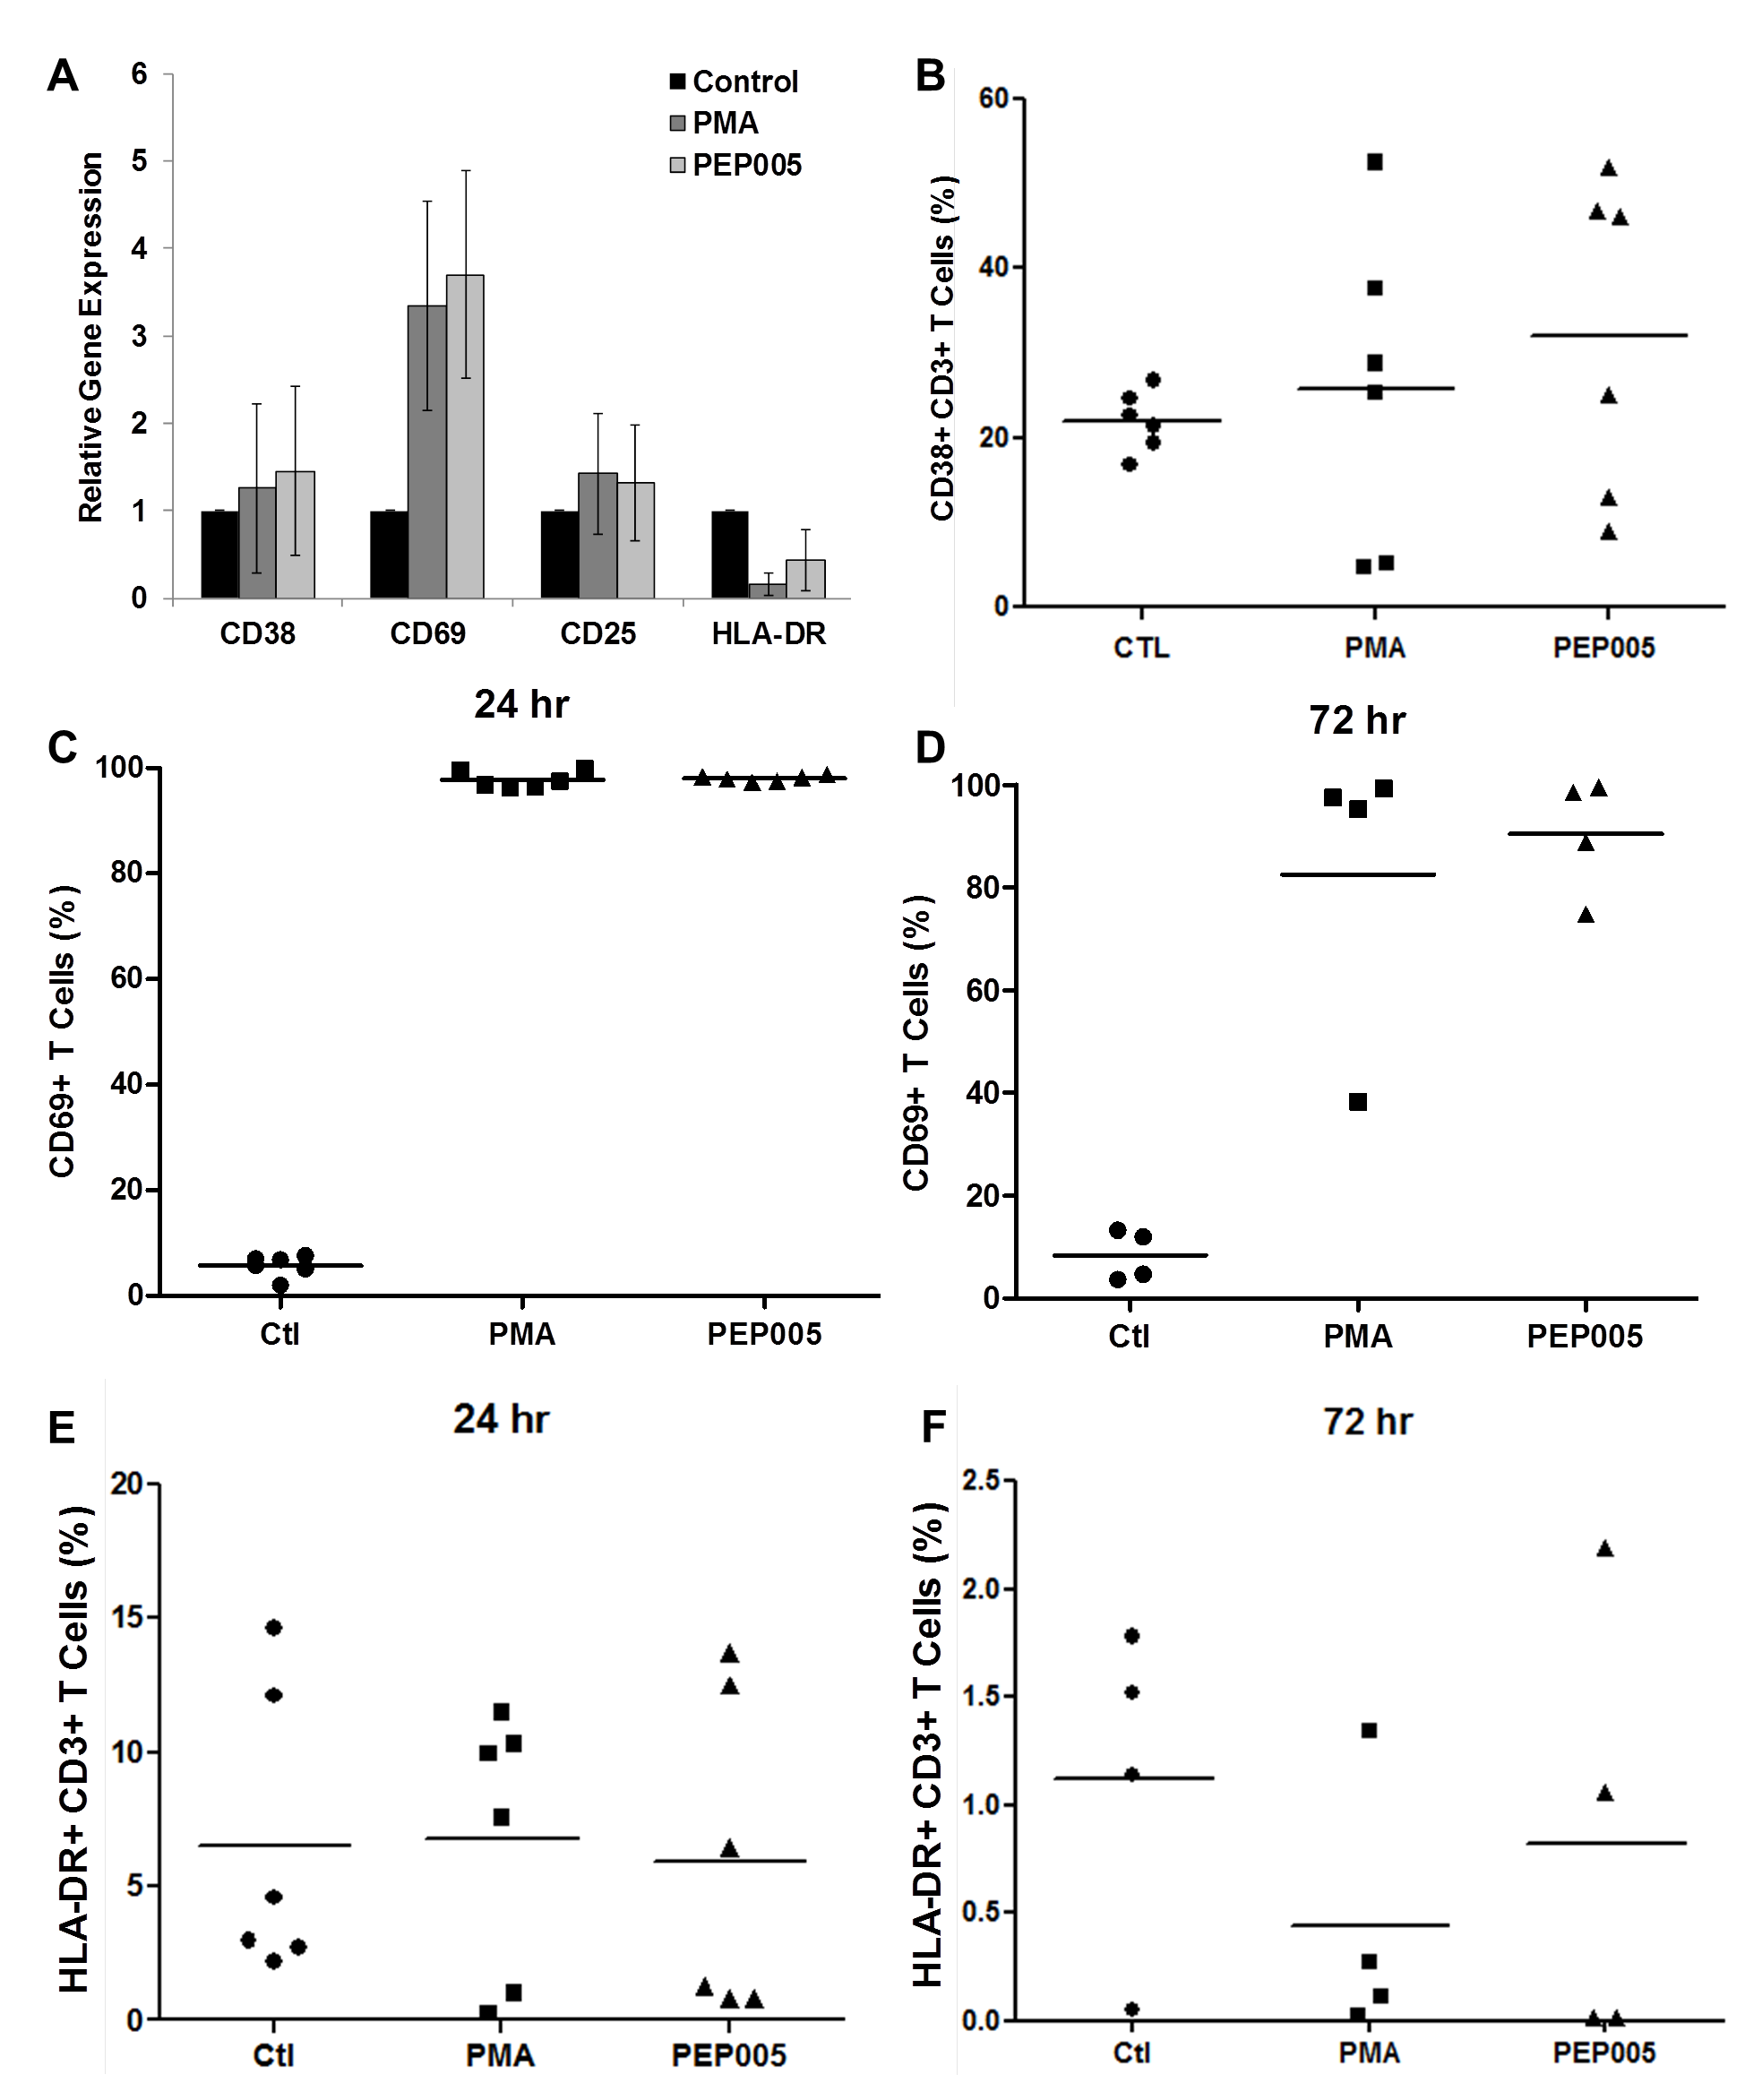 Expression of T cell activation markers in PEP005-treated primary CD4+ T cells.